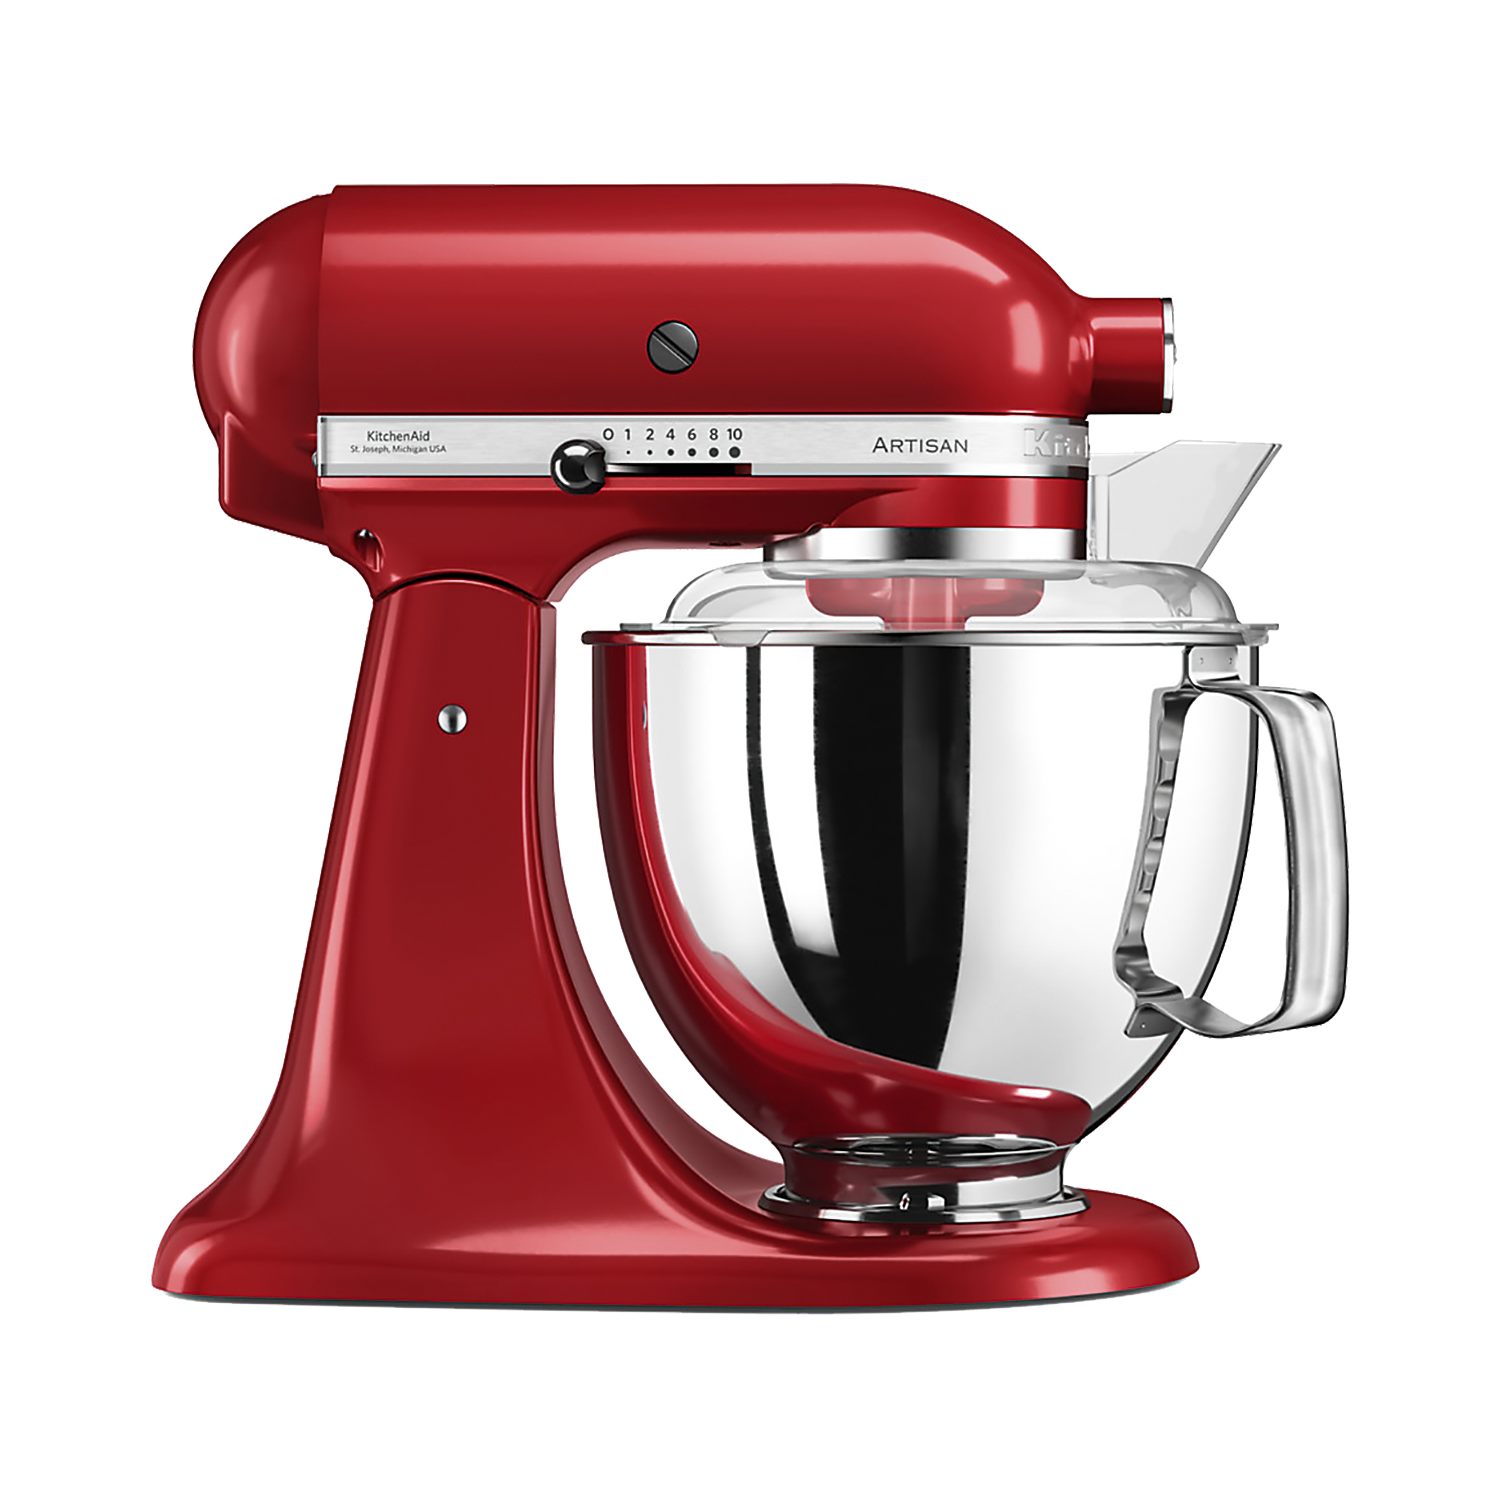 KitchenAid ARTISAN Küchenmaschine, 4,8l, Empire Red